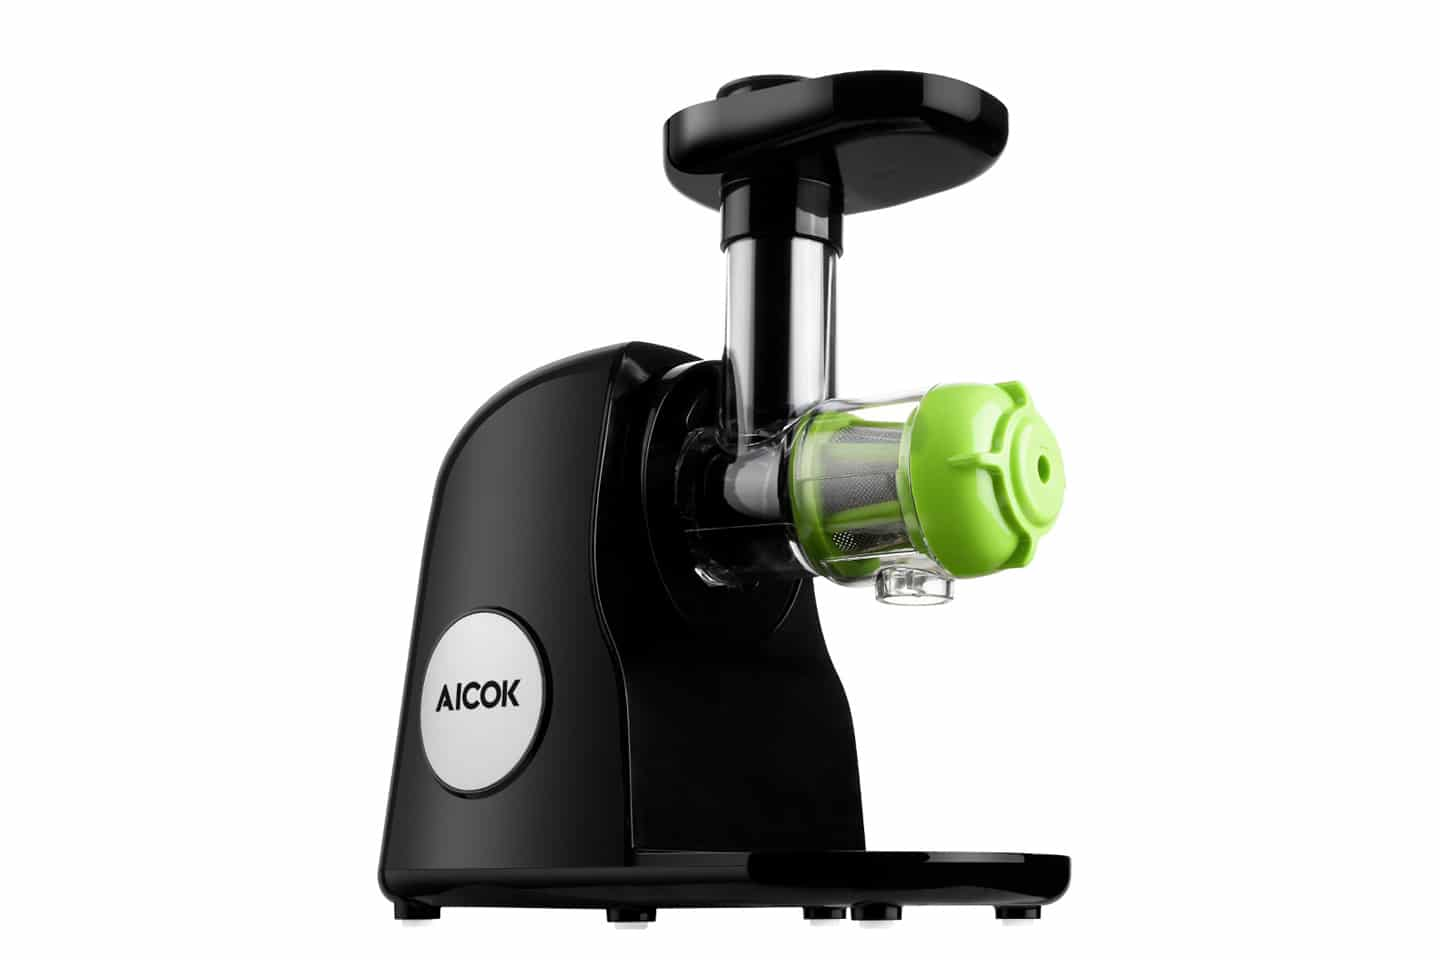 AICOK AMR-521 Masticating Juicer Review | Juicing Journal